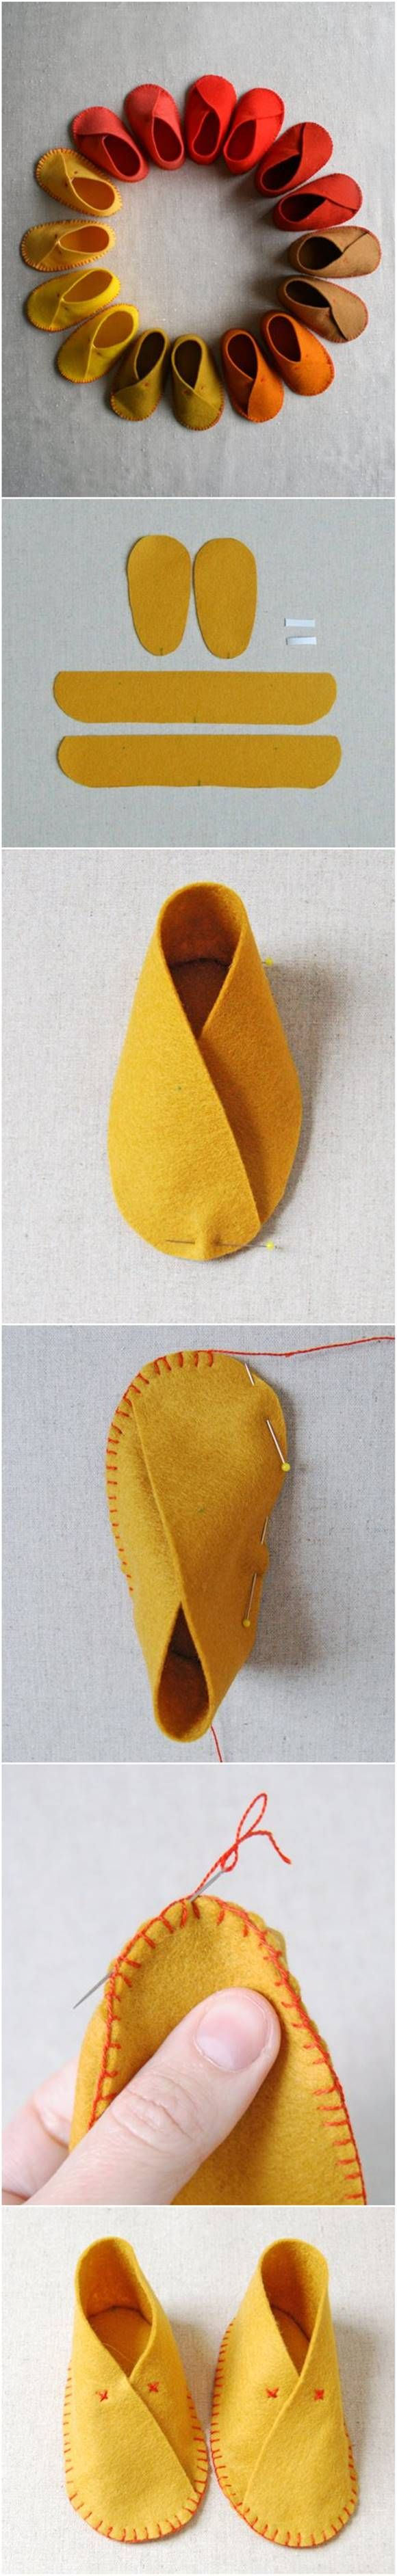 How to DIY Easy Felt Baby Shoes